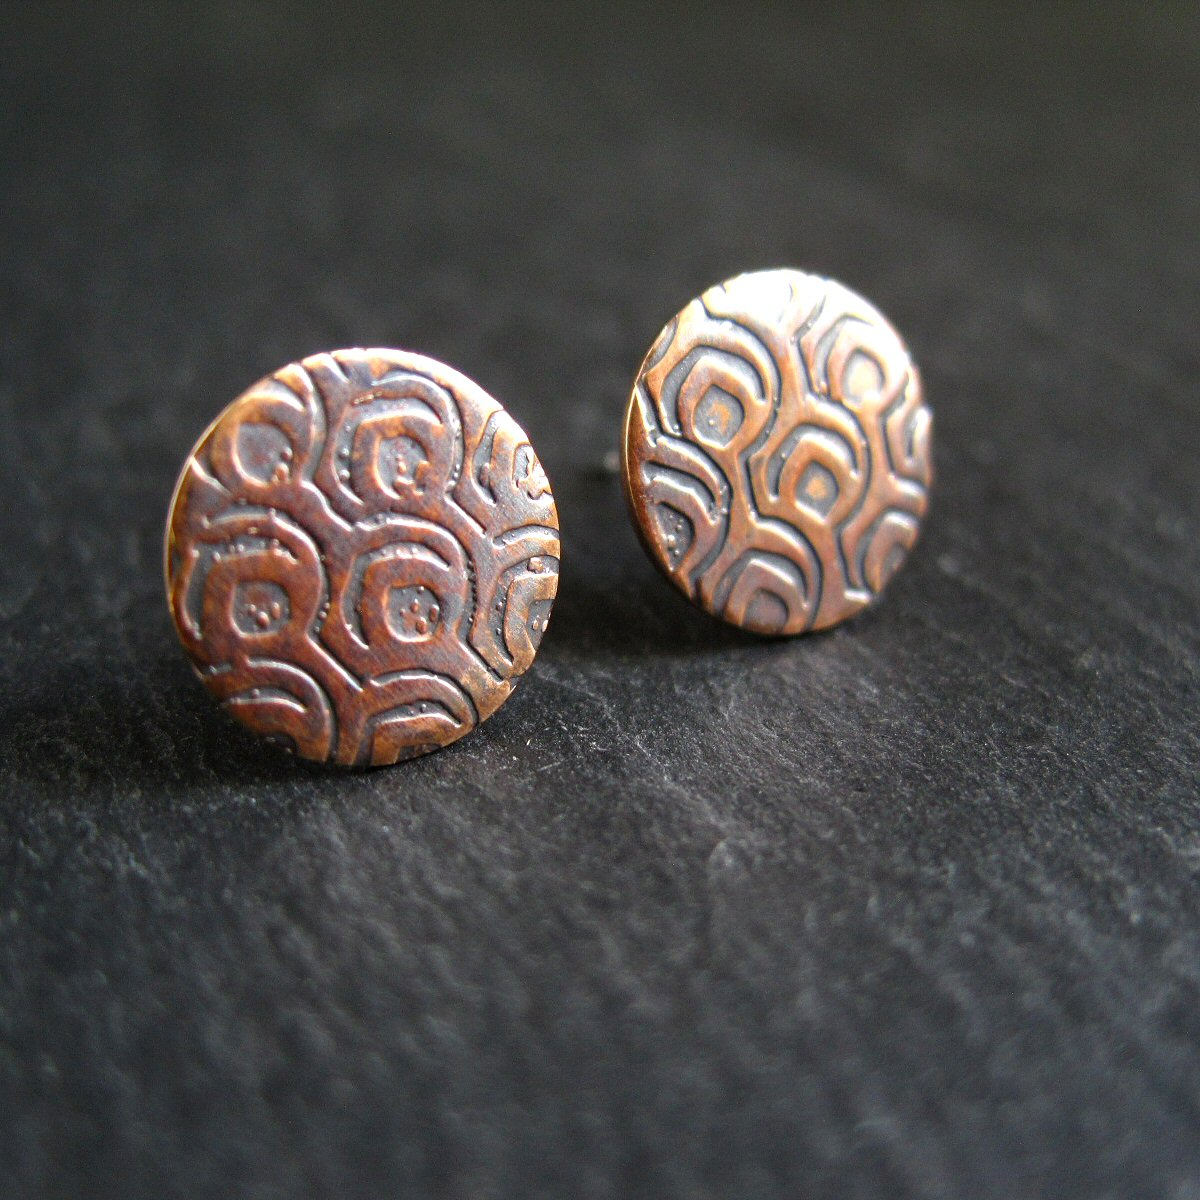 handmade bronze stud earrings © Cinnamon Jewellery 2015